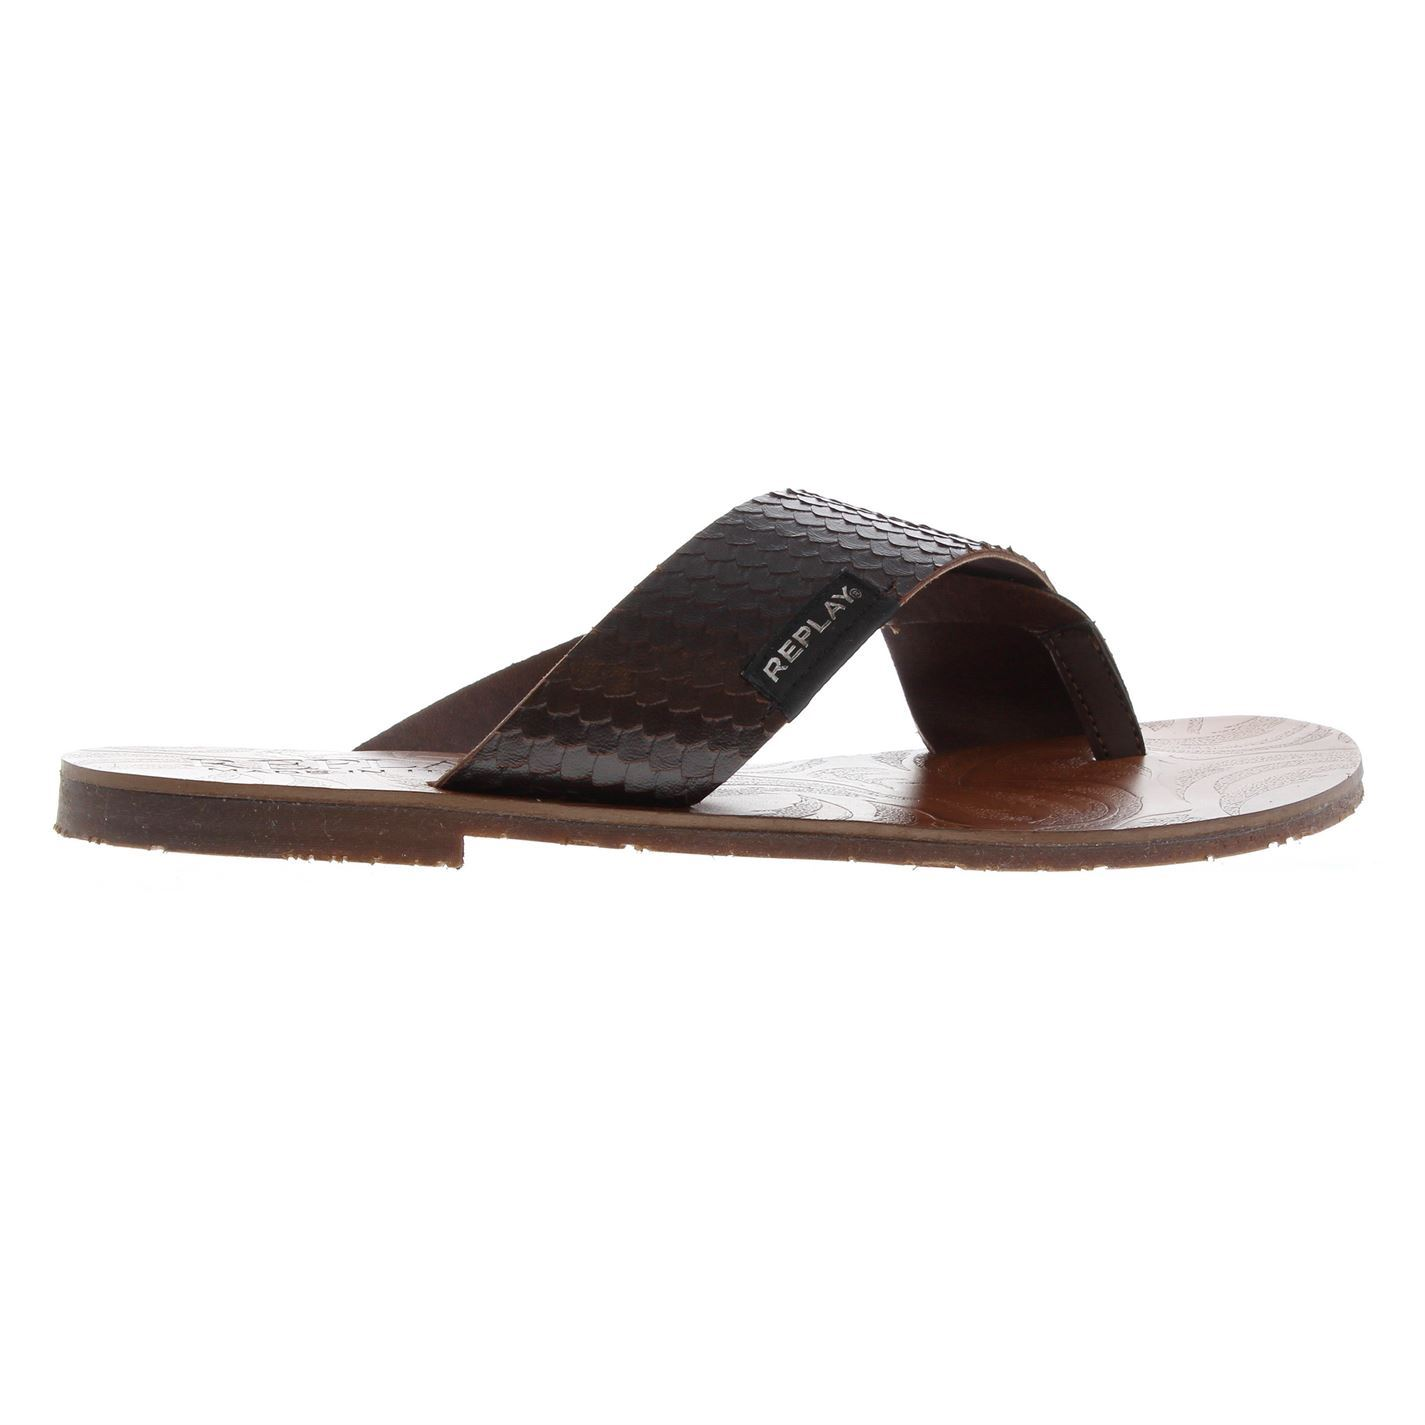 c622a58e8026 Details about Mens Replay Rami Flip Flops Slip On Textured New